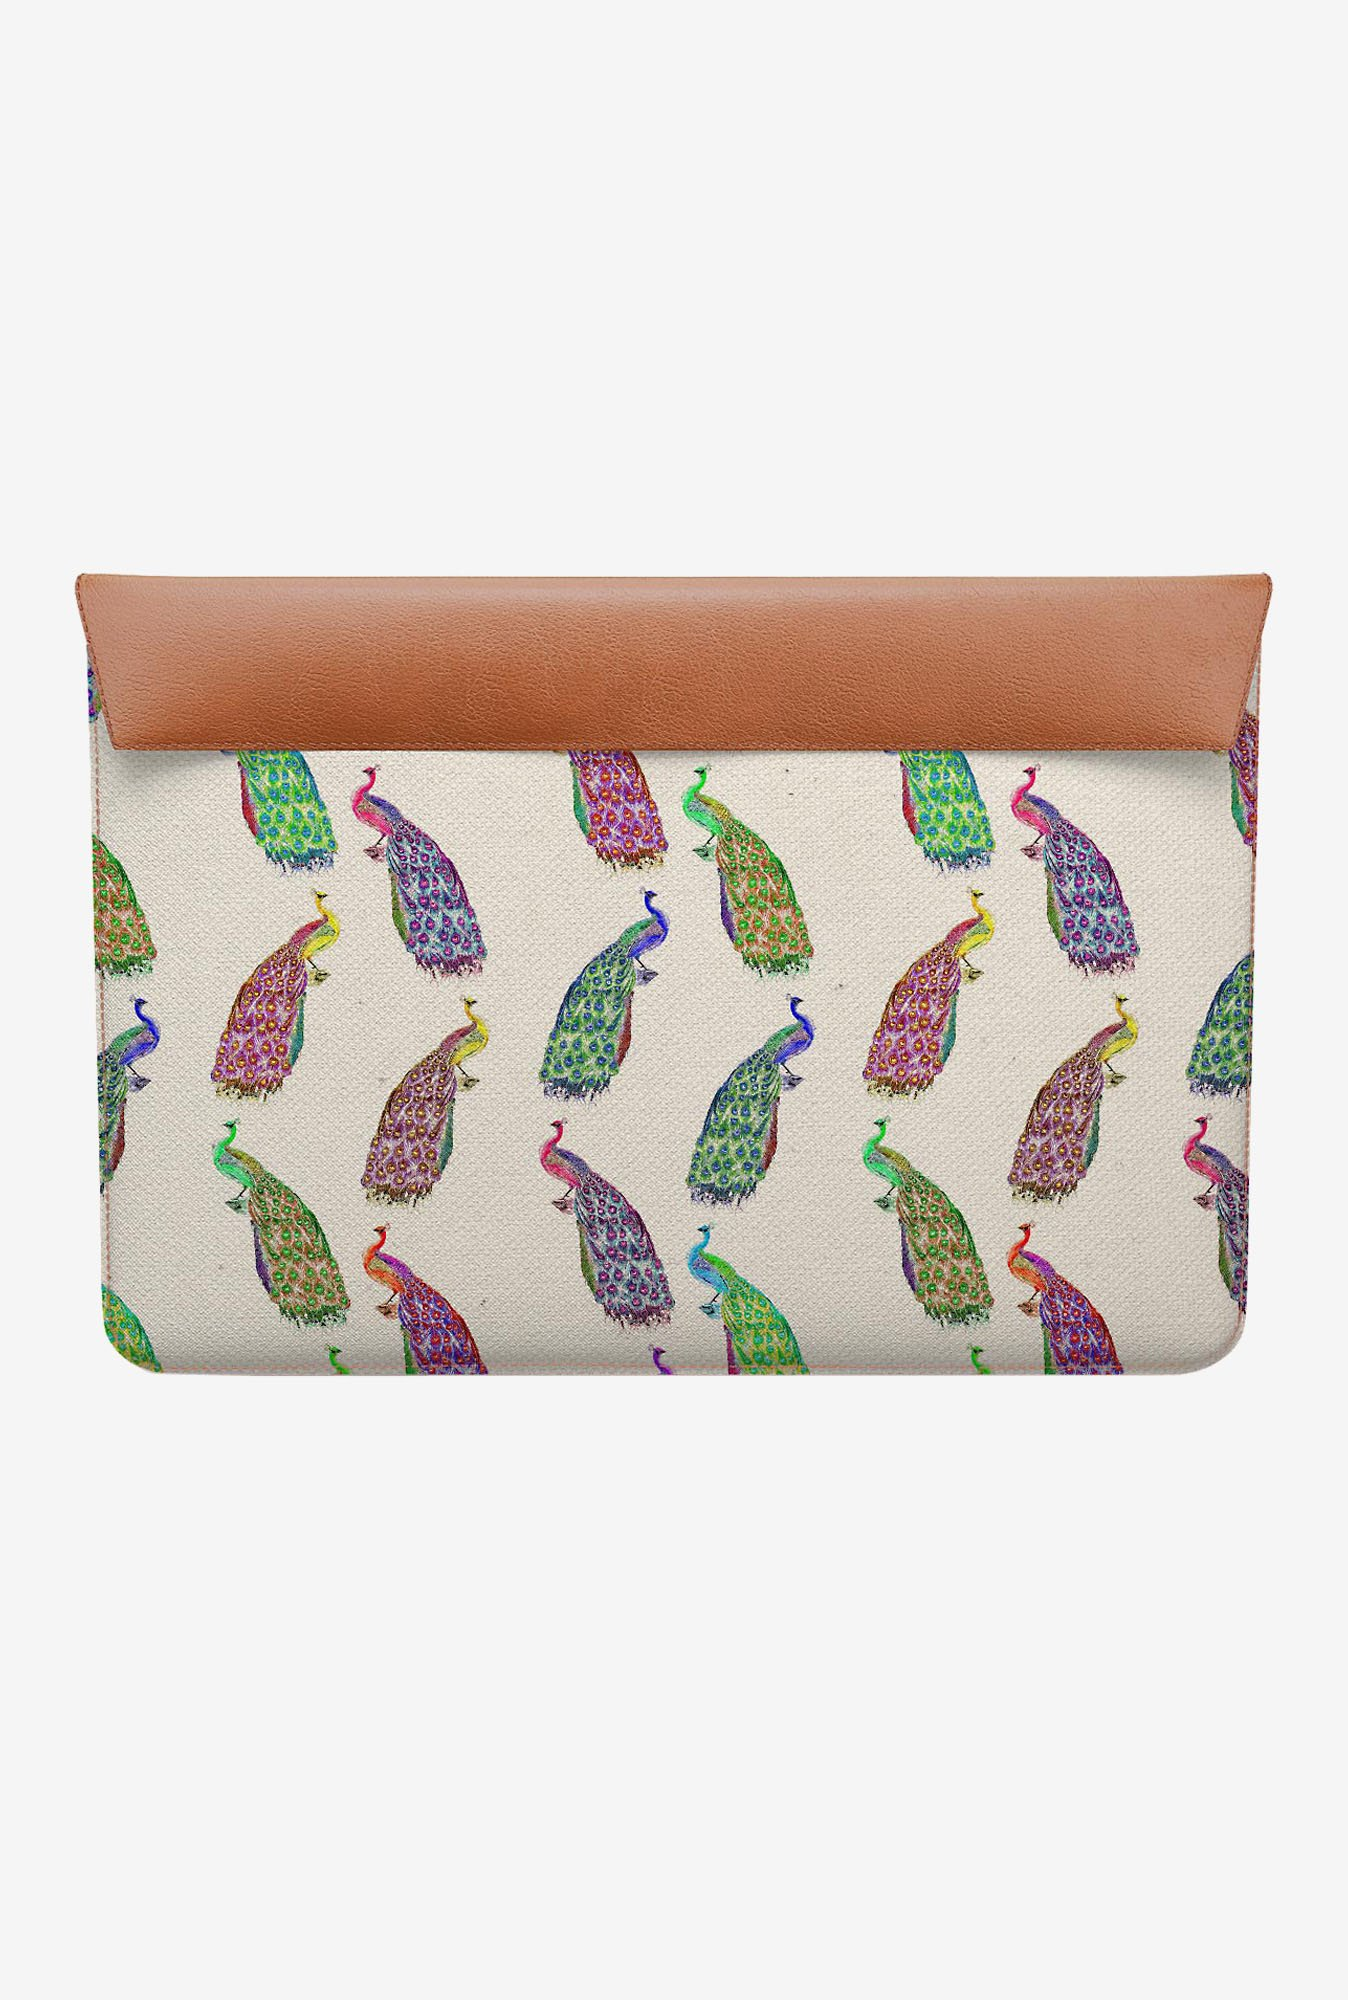 DailyObjects Retro Peacock MacBook Pro 15 Envelope Sleeve